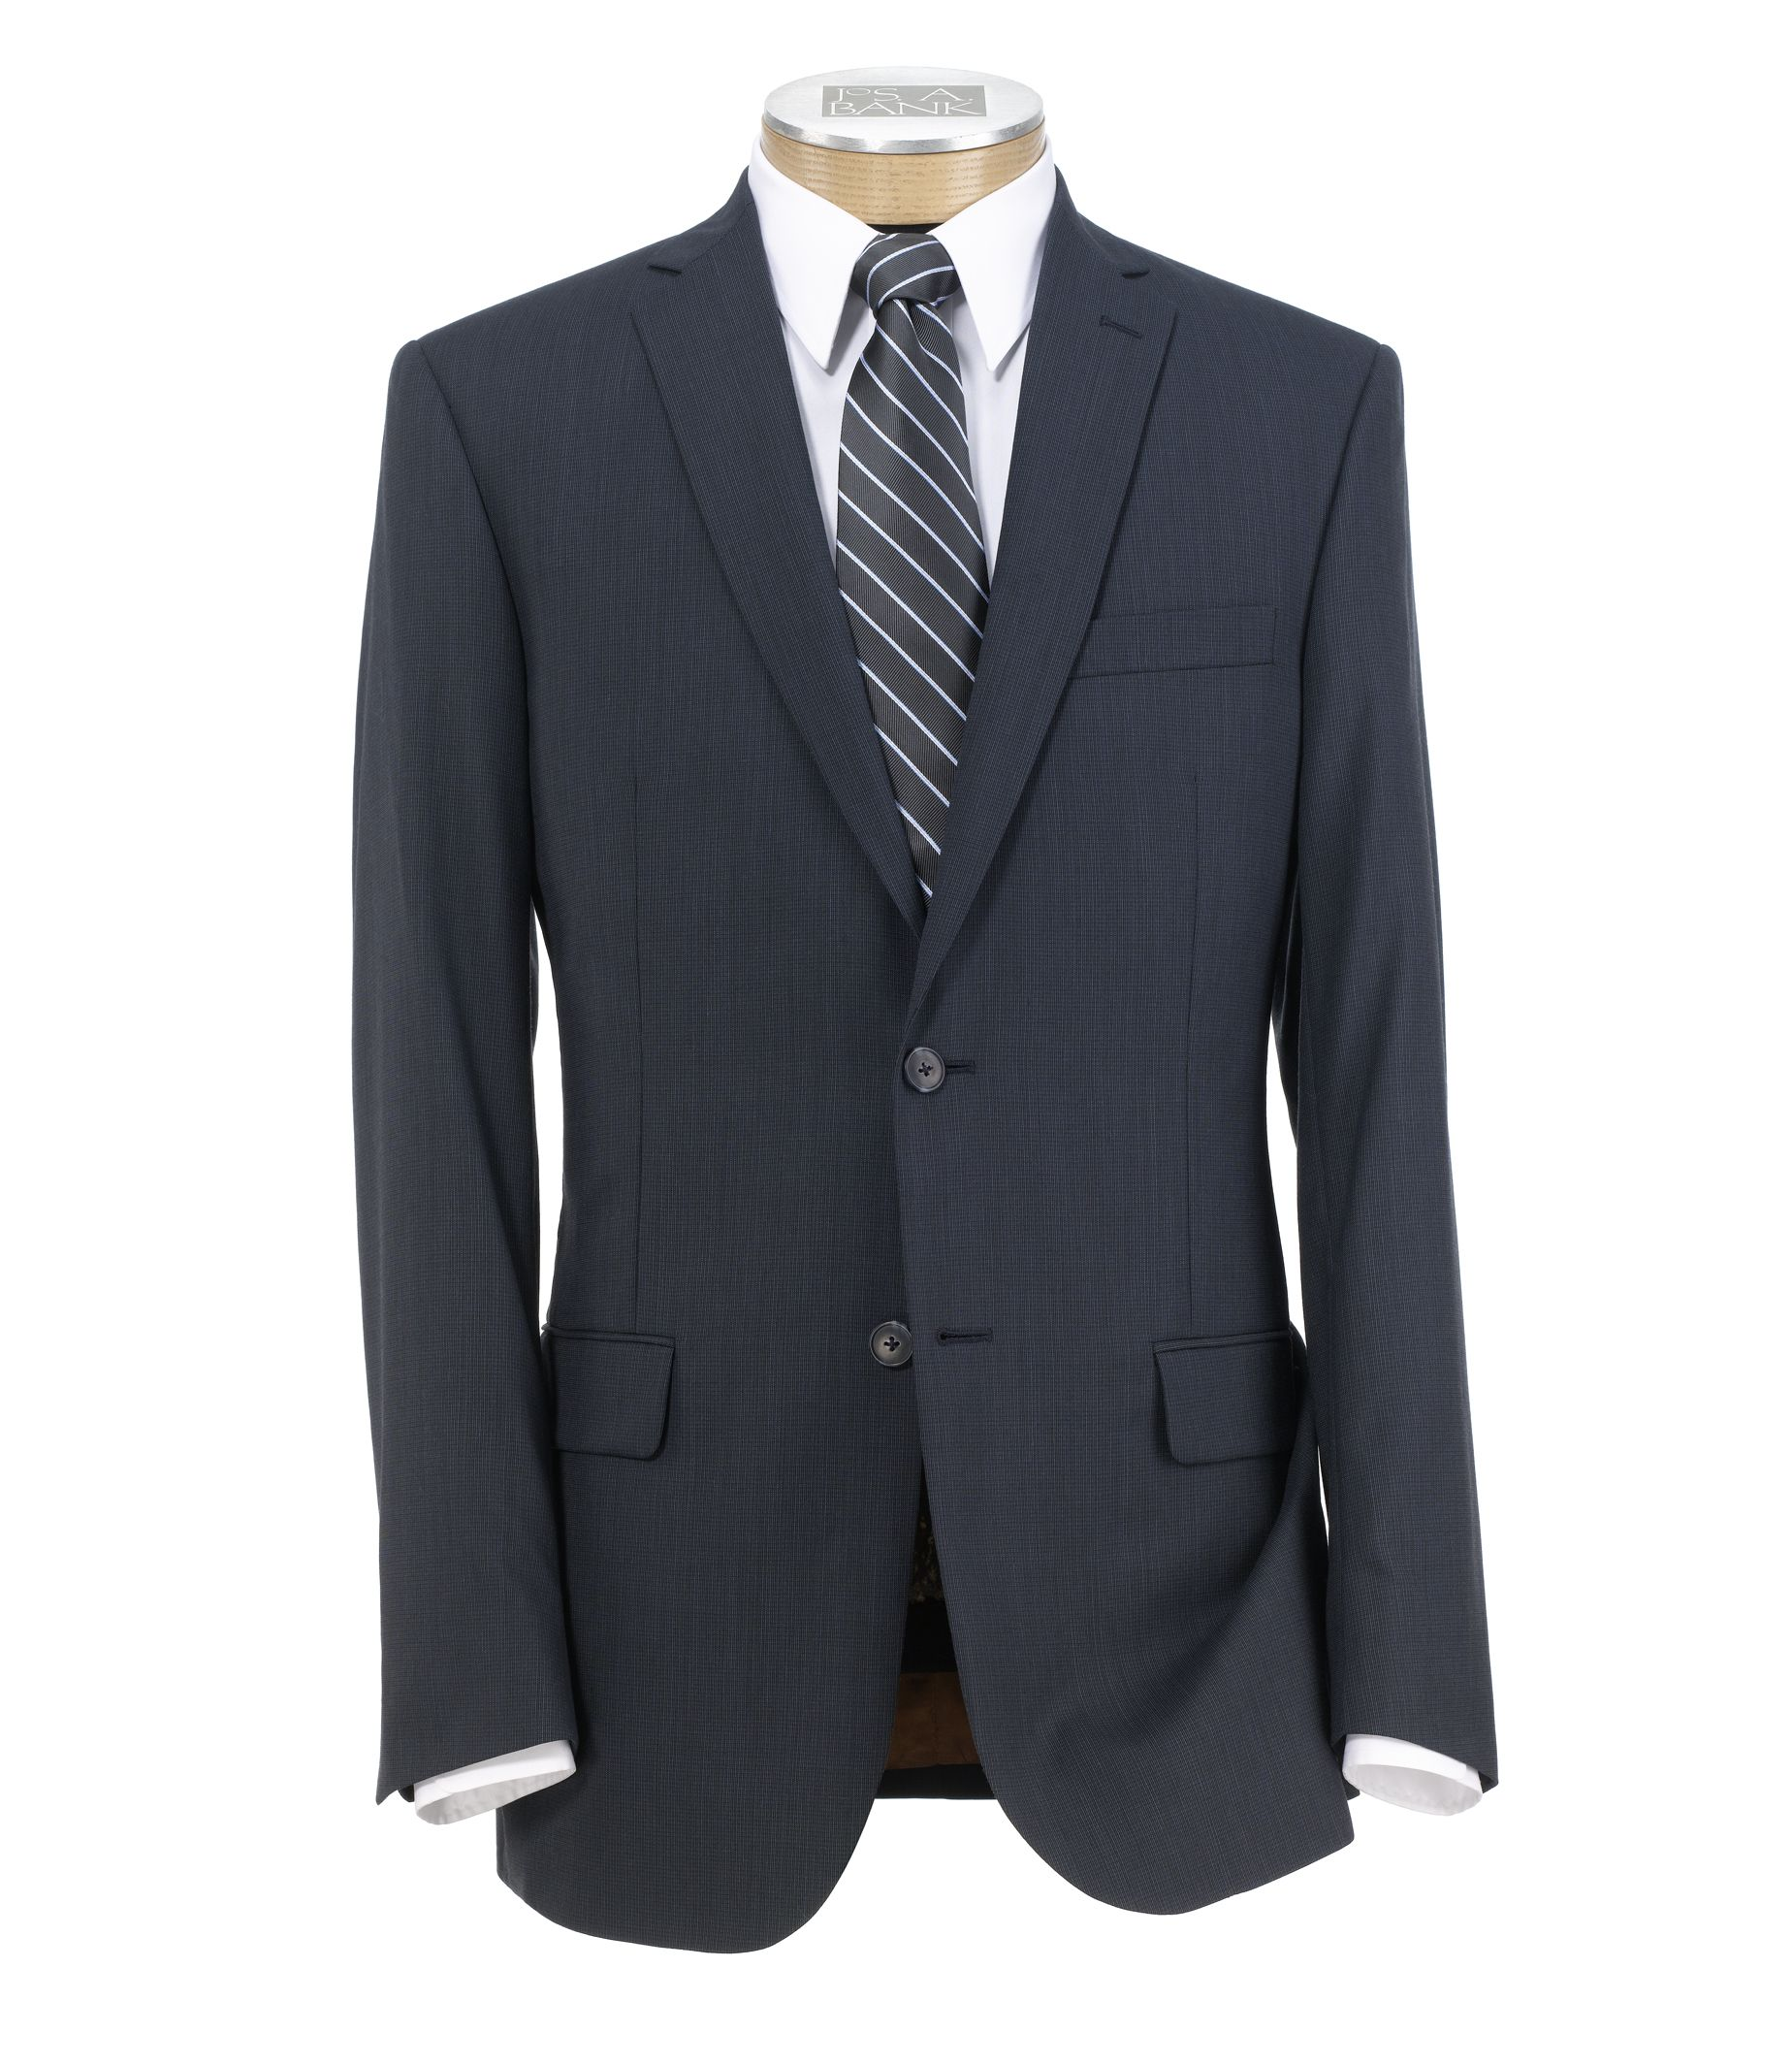 Joseph Slim Fit 2 Button Plain Front Wool Suit - Extended Sizes- Navy Mini Grid Checkered